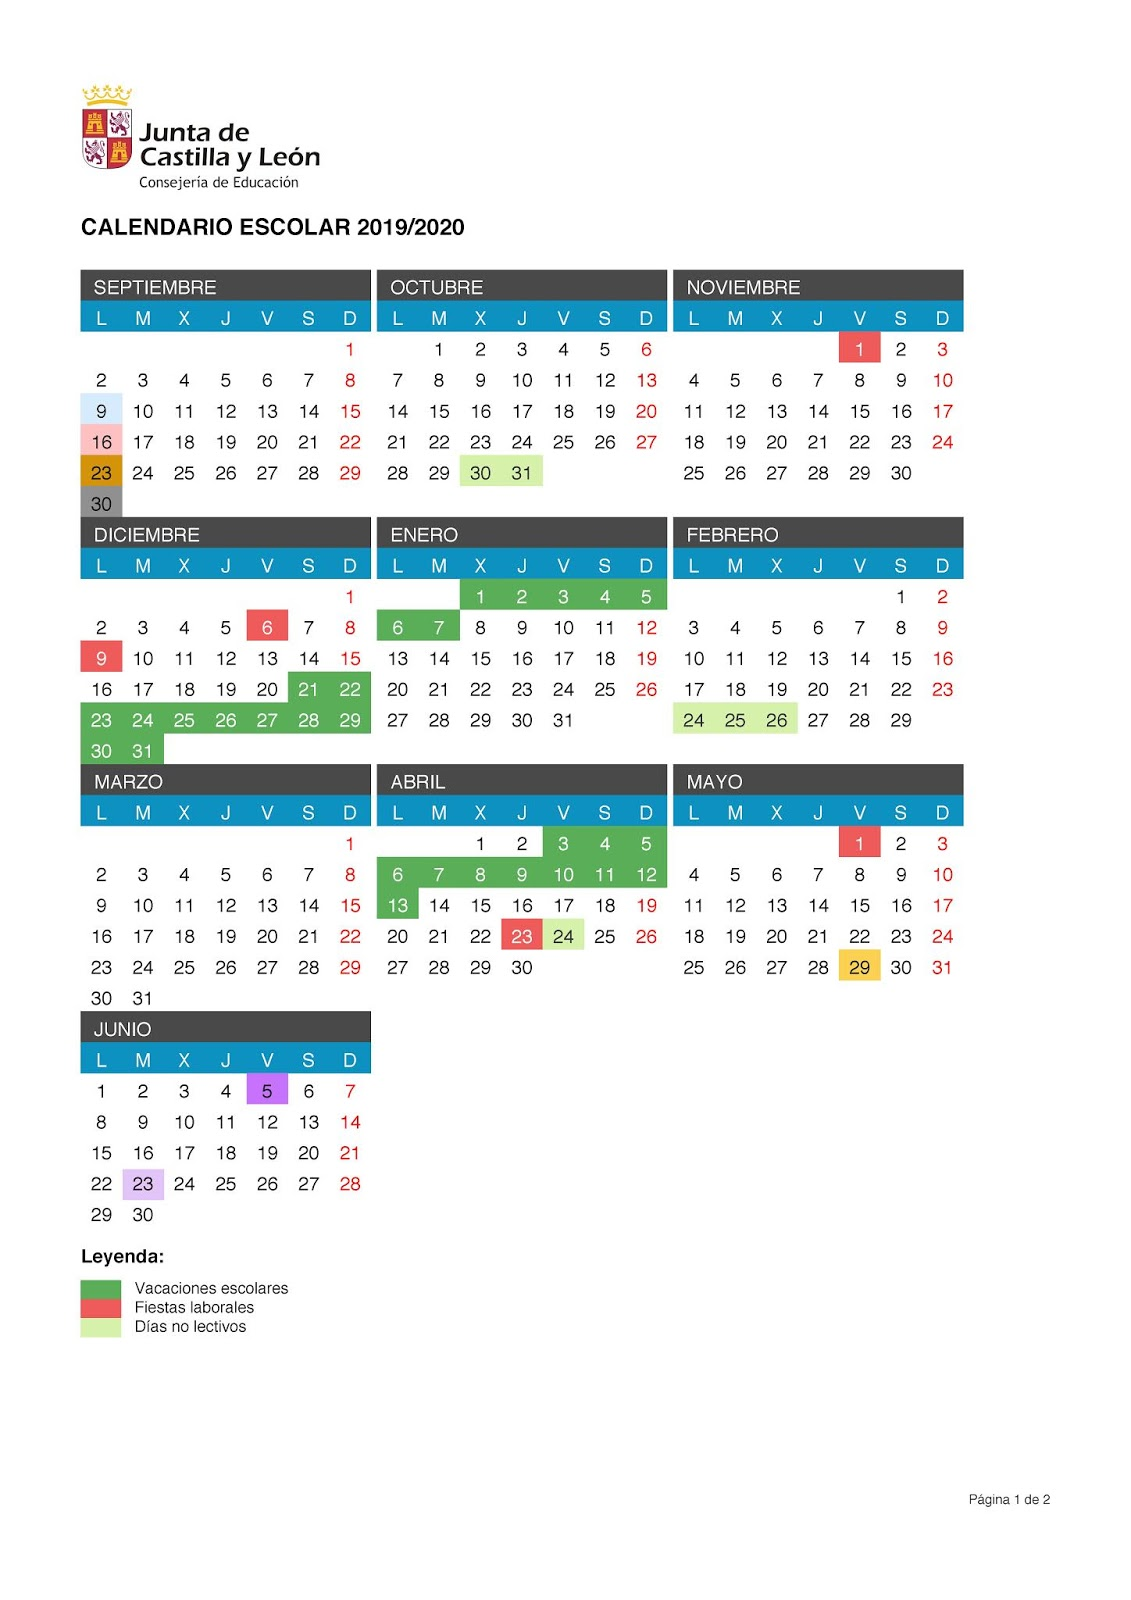 Calendario 2019 Escolar 2020 Madrid.Calendario Escolar 2019 2020 Castilla Y Leon